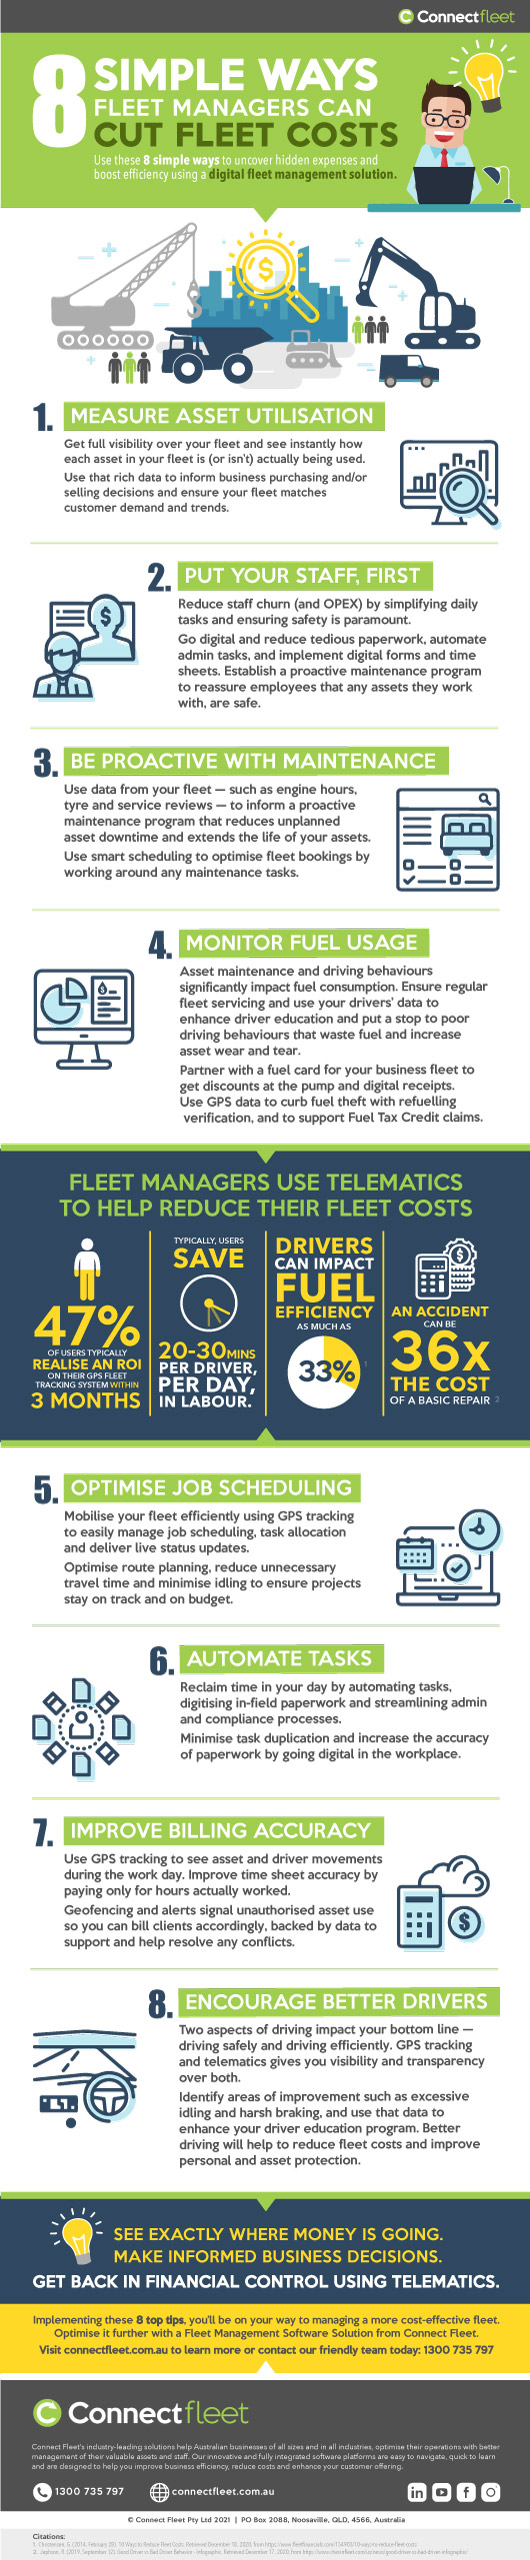 8 simple ways to cut fleet costs infographic by Connect Fleet